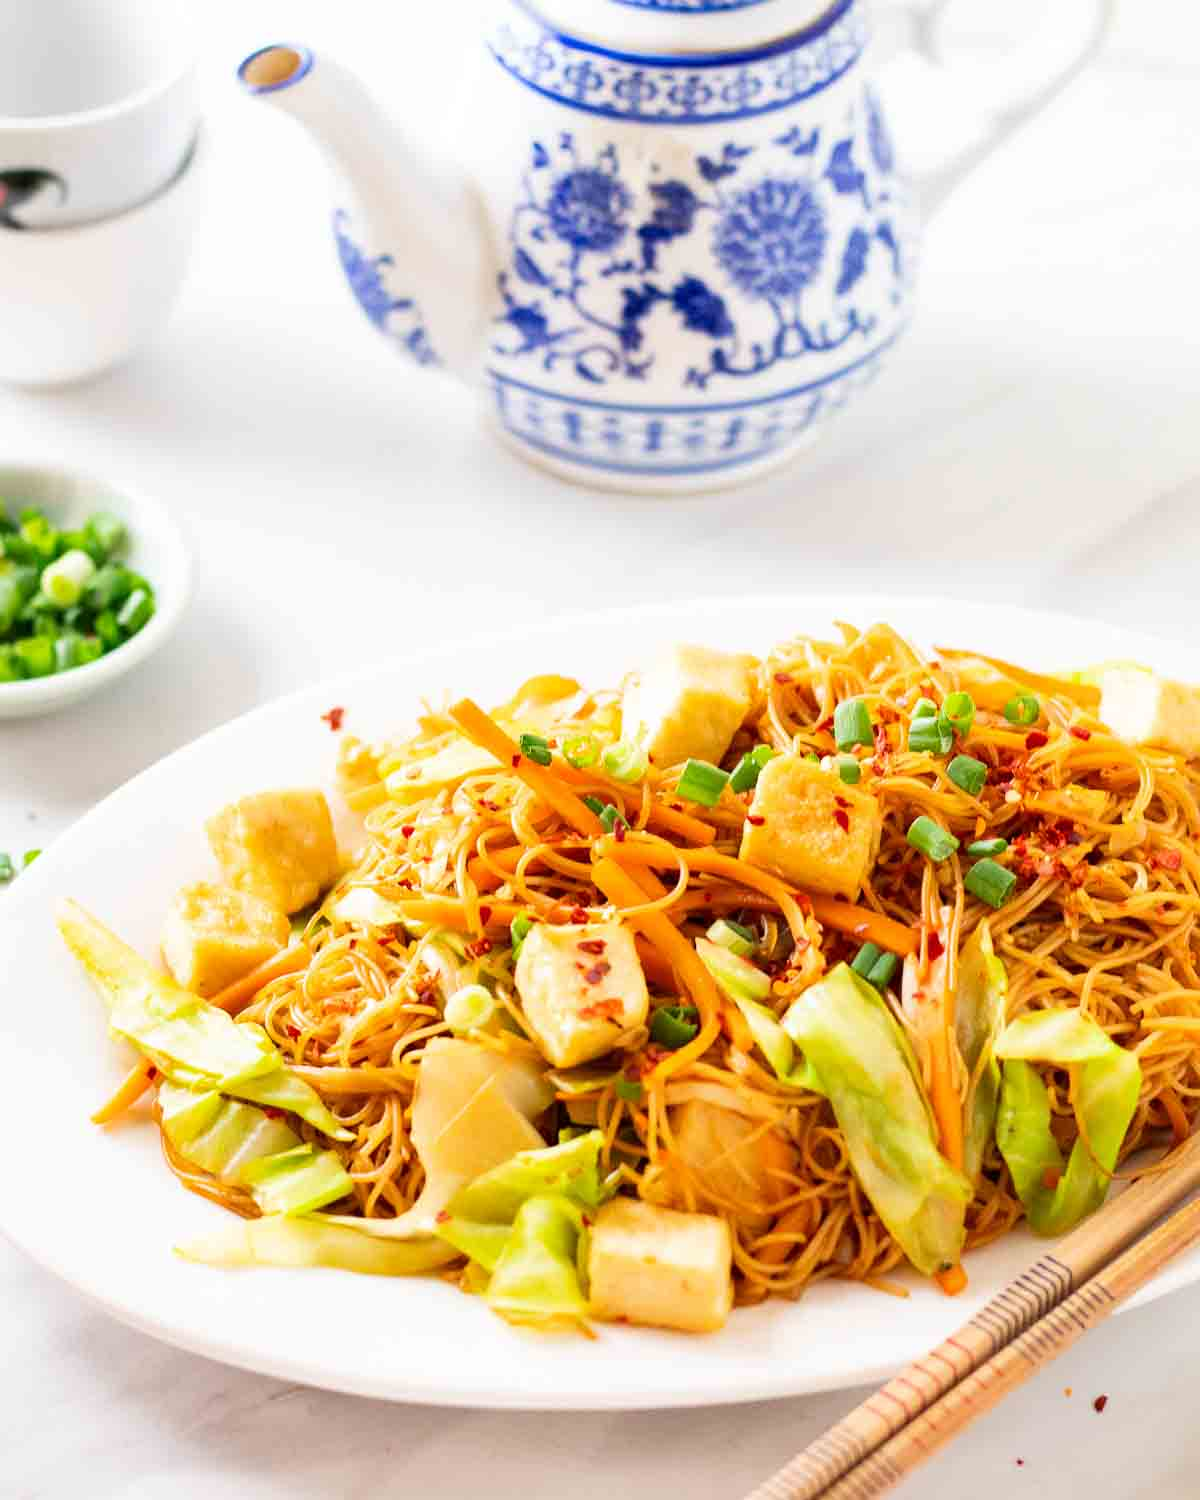 Stir-fry vermicelli on a white plate. There is a teapot, teacups and scallion behind.